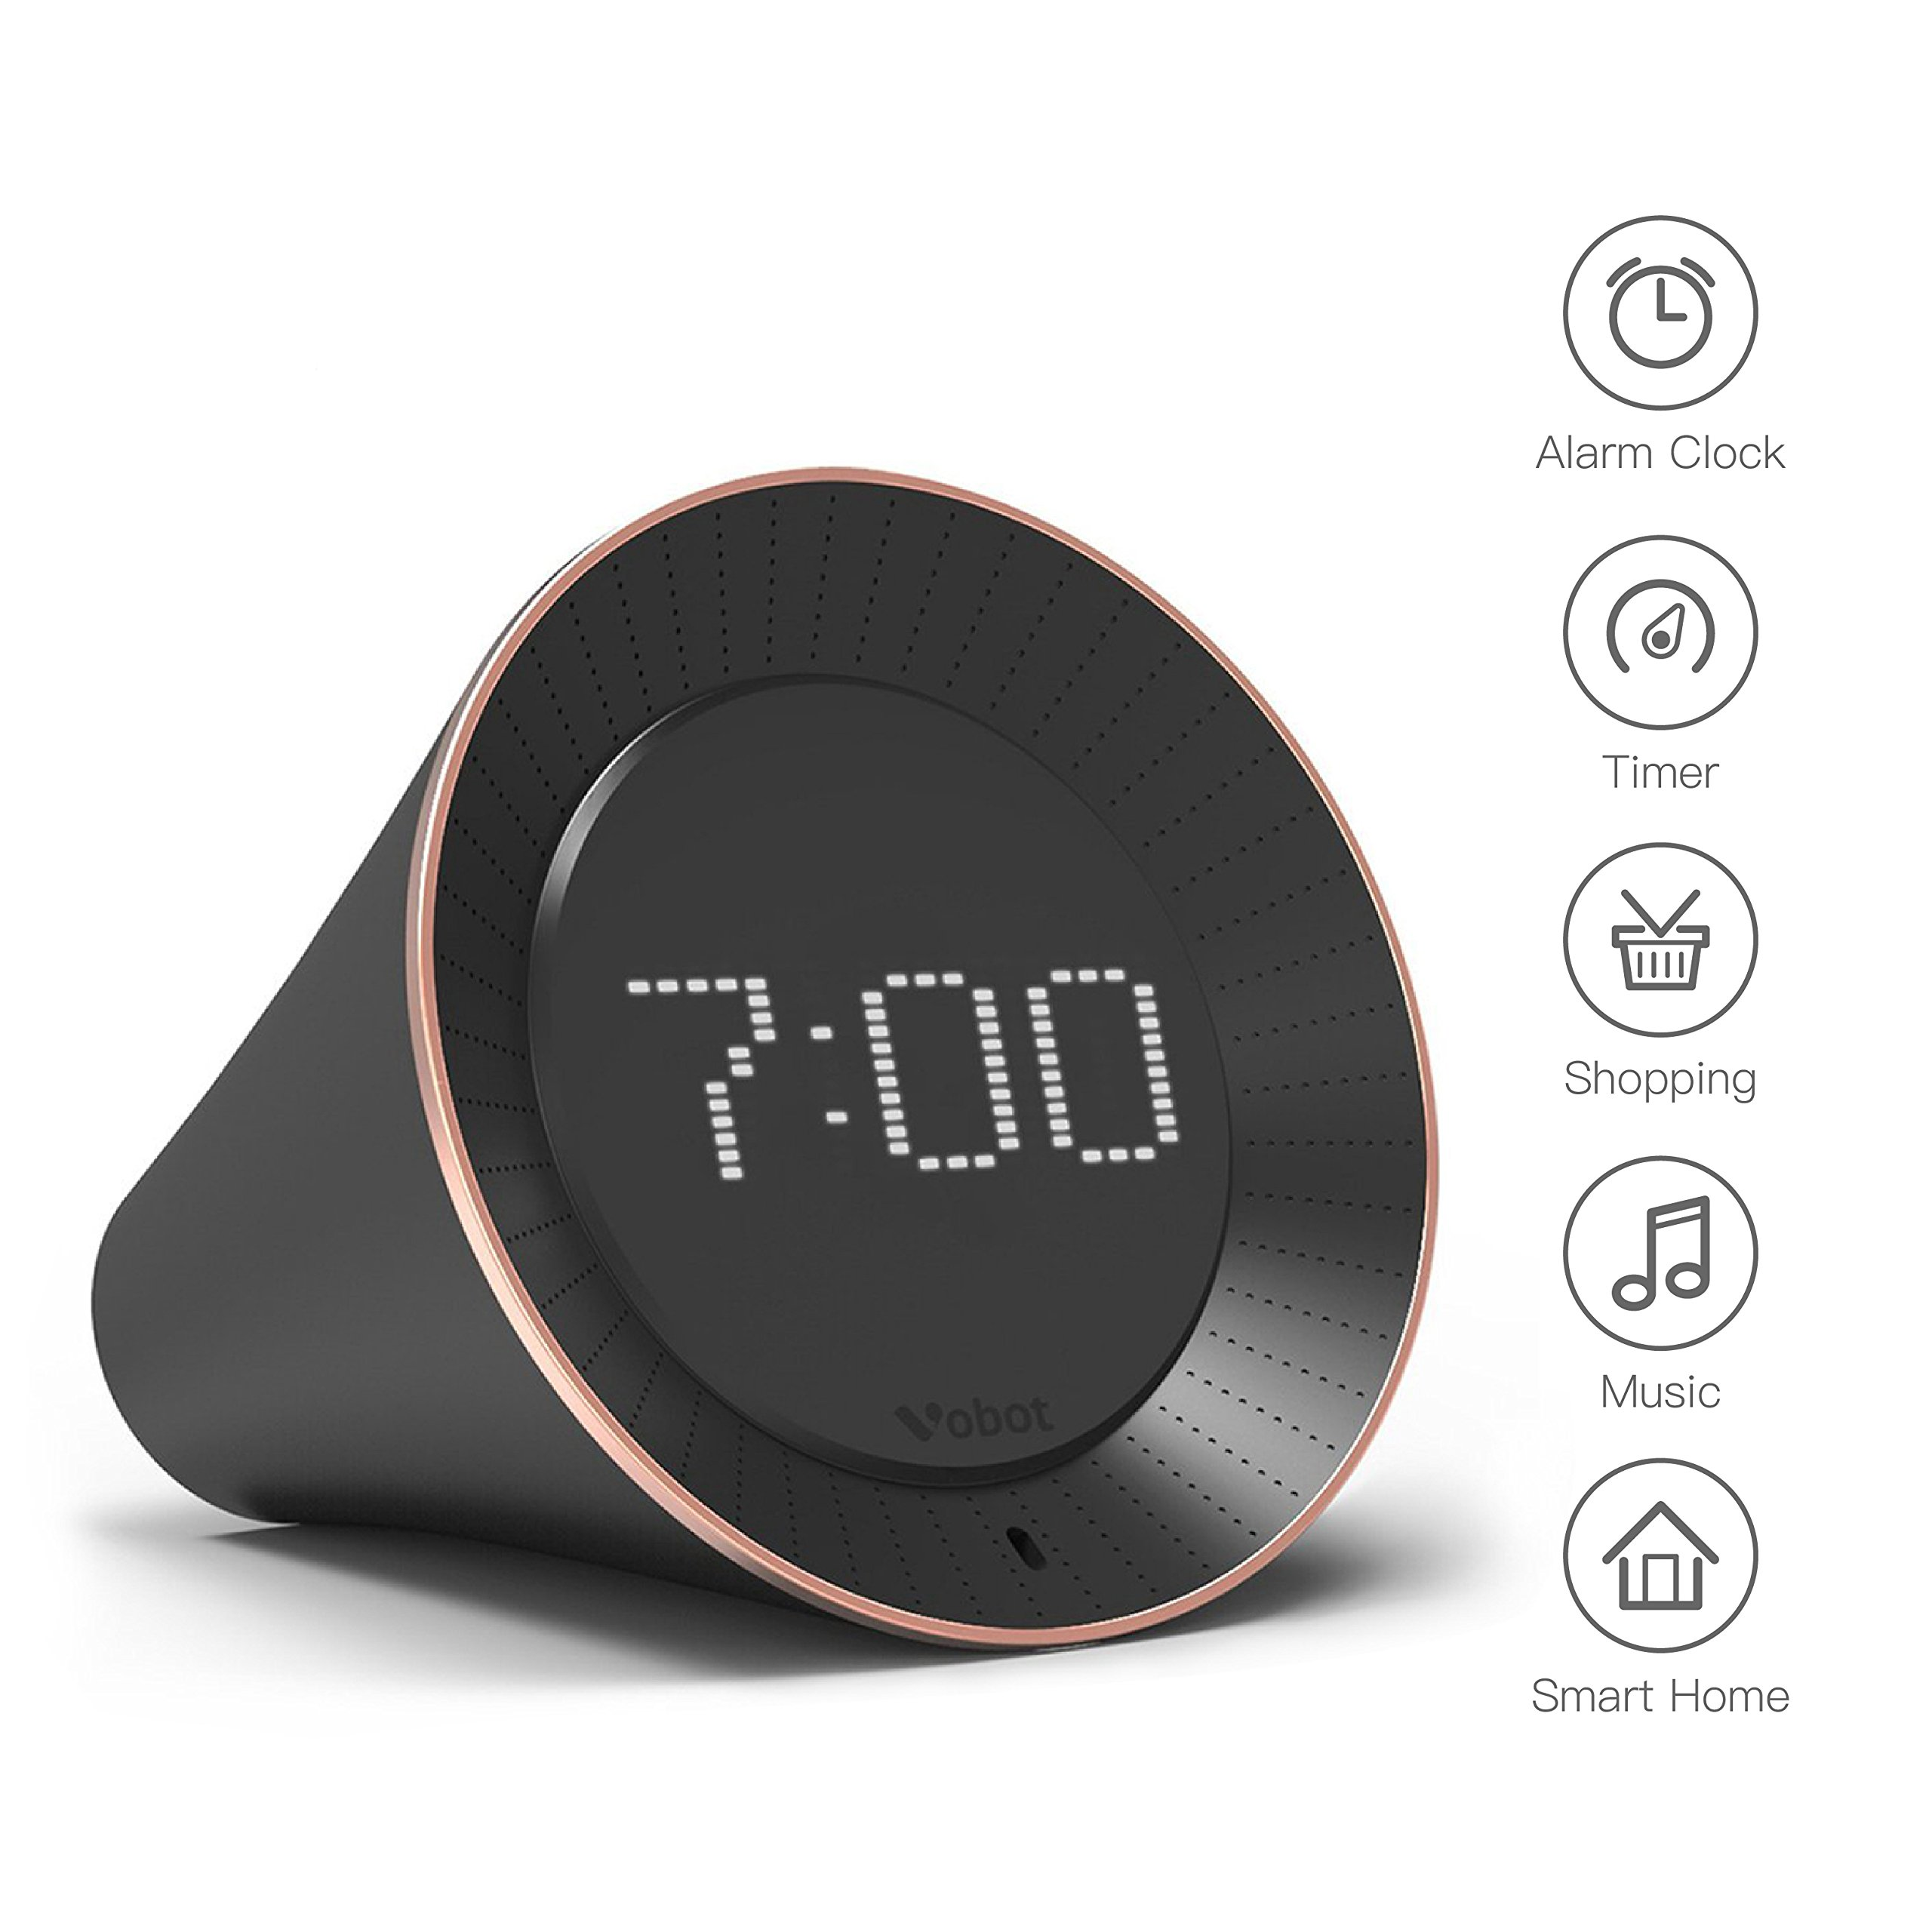 Vobot Smart Alarm Clock with Amazon Alexa[Touch-Initiate], 5W Speaker, LED Display, White Noise Machine, Timer/Date/Weather/Daily News/Radio/Music(Amazon Music, iHeartRadio, TuneIn etc) by VOBOT (Image #1)